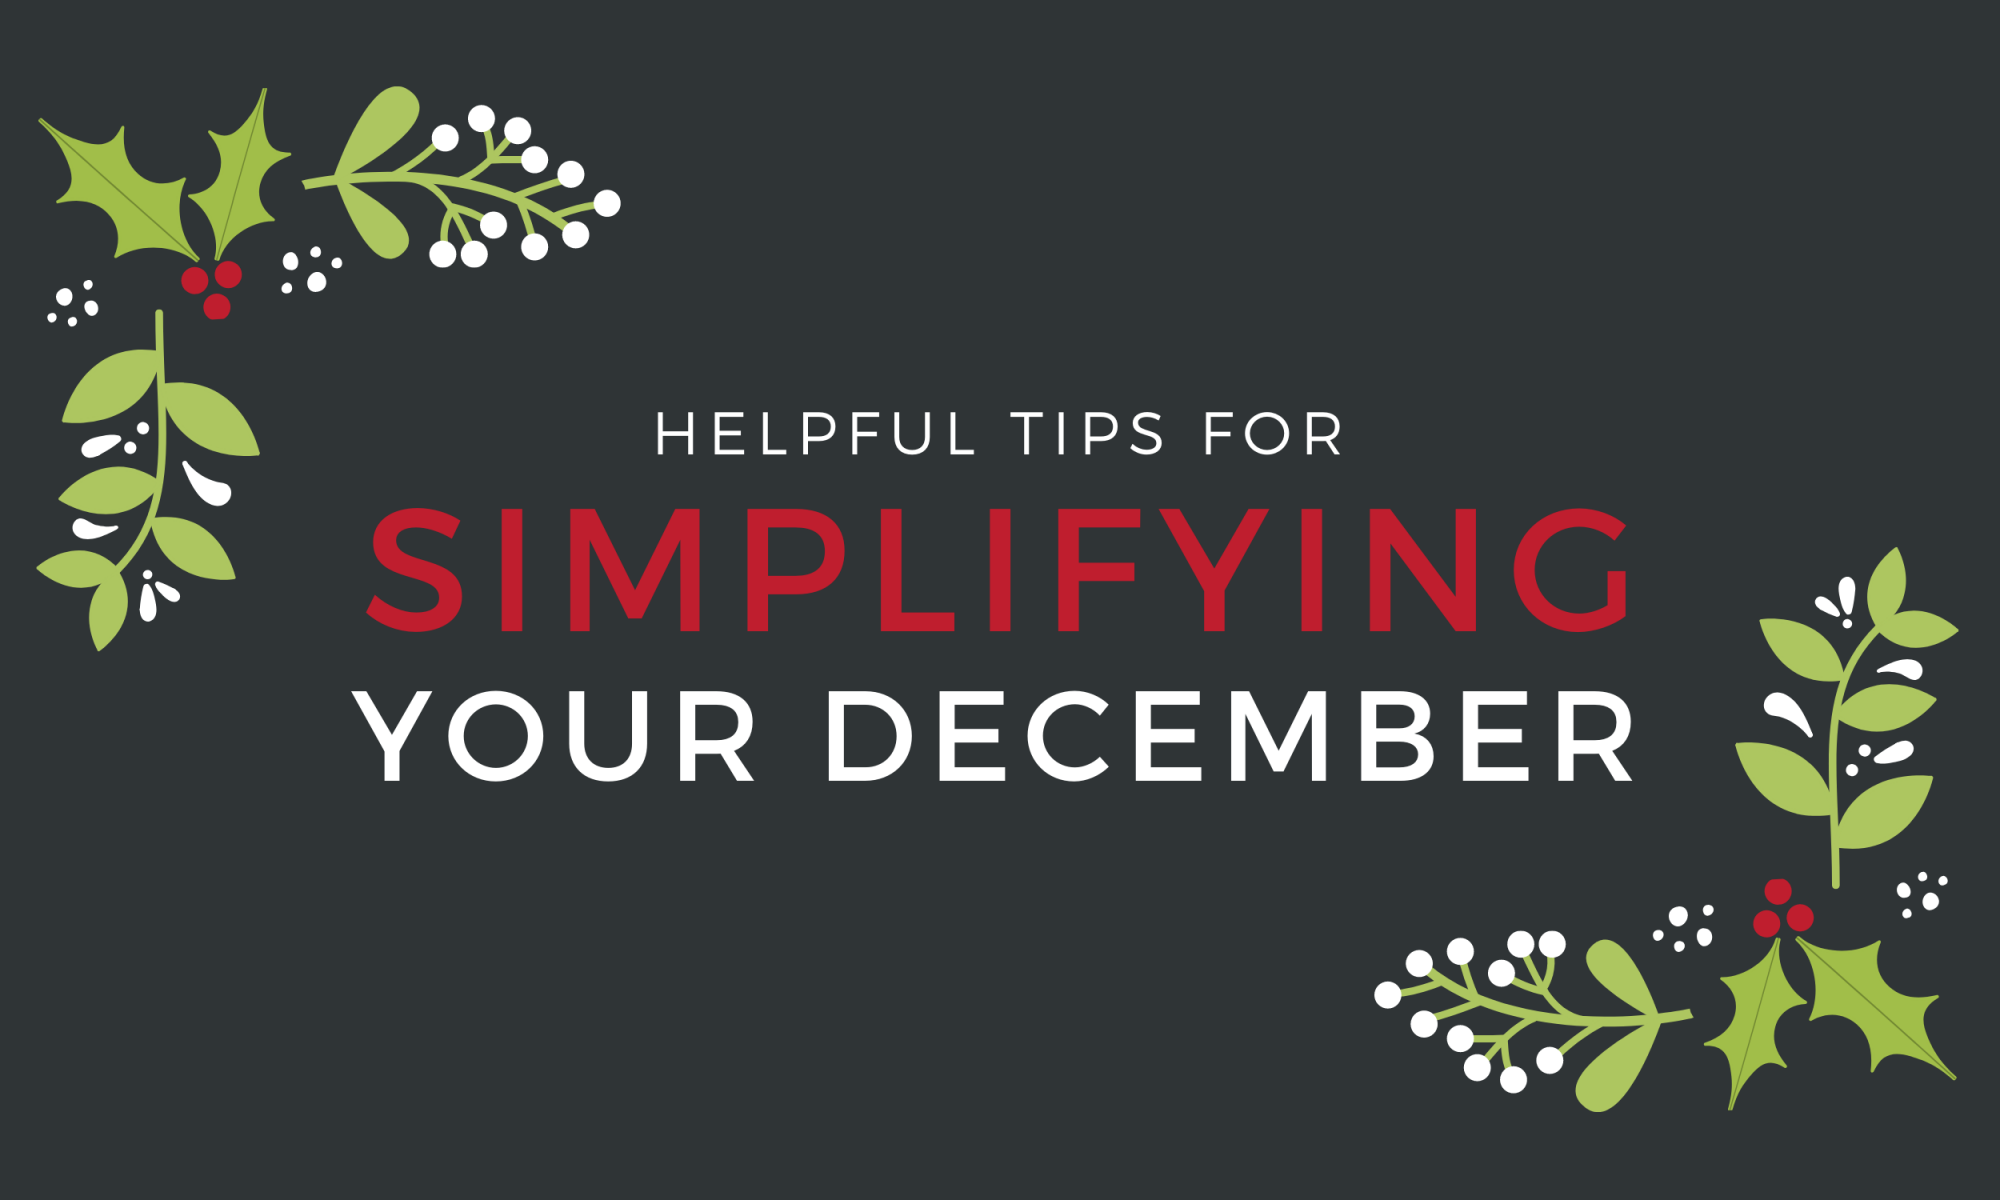 Helpful tips for simlifying your december.